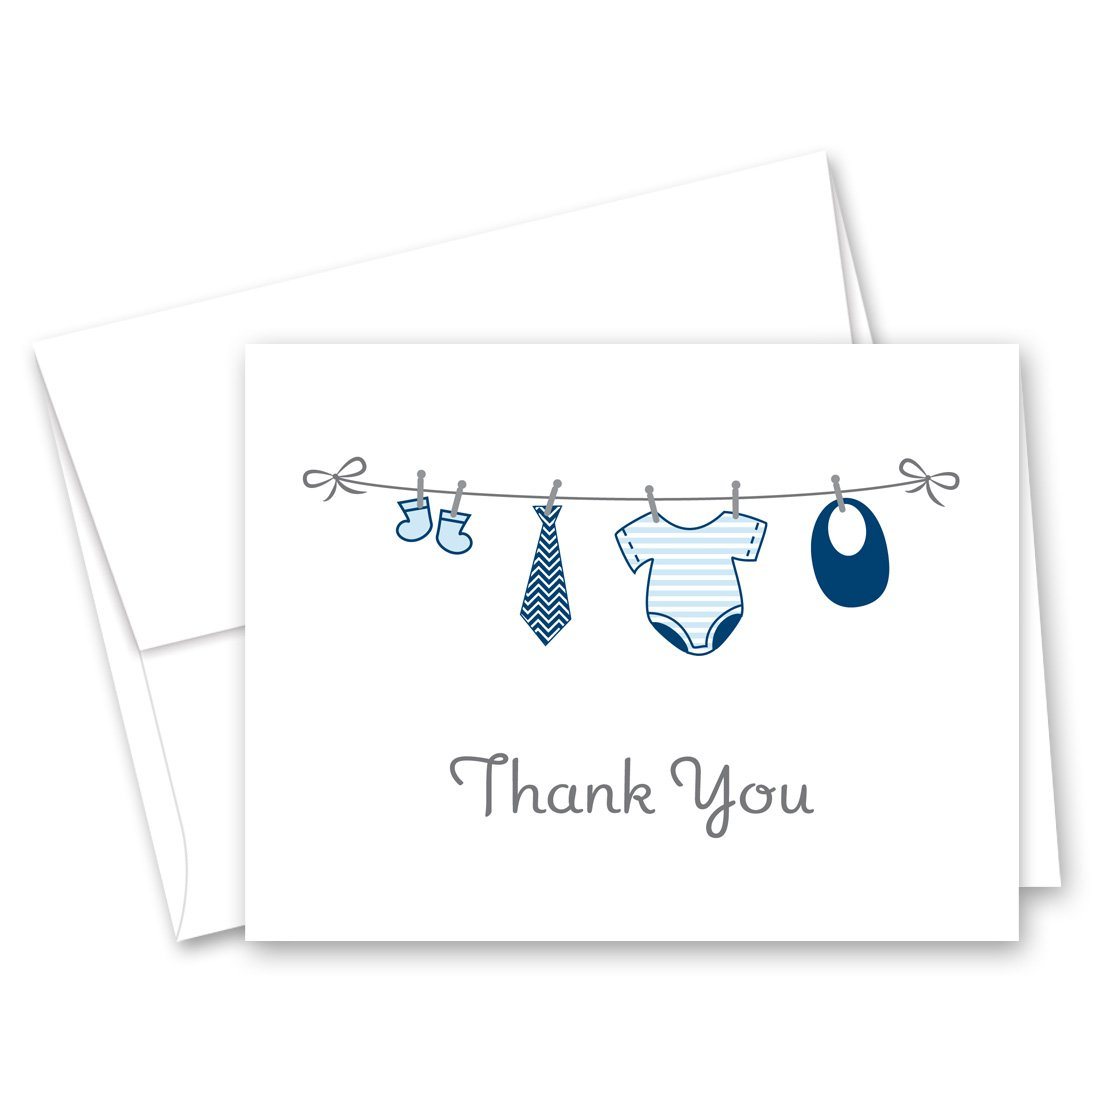 50 Cnt Hanging Baby Boy Cloth Baby Thank You Cards by MyExpression.com